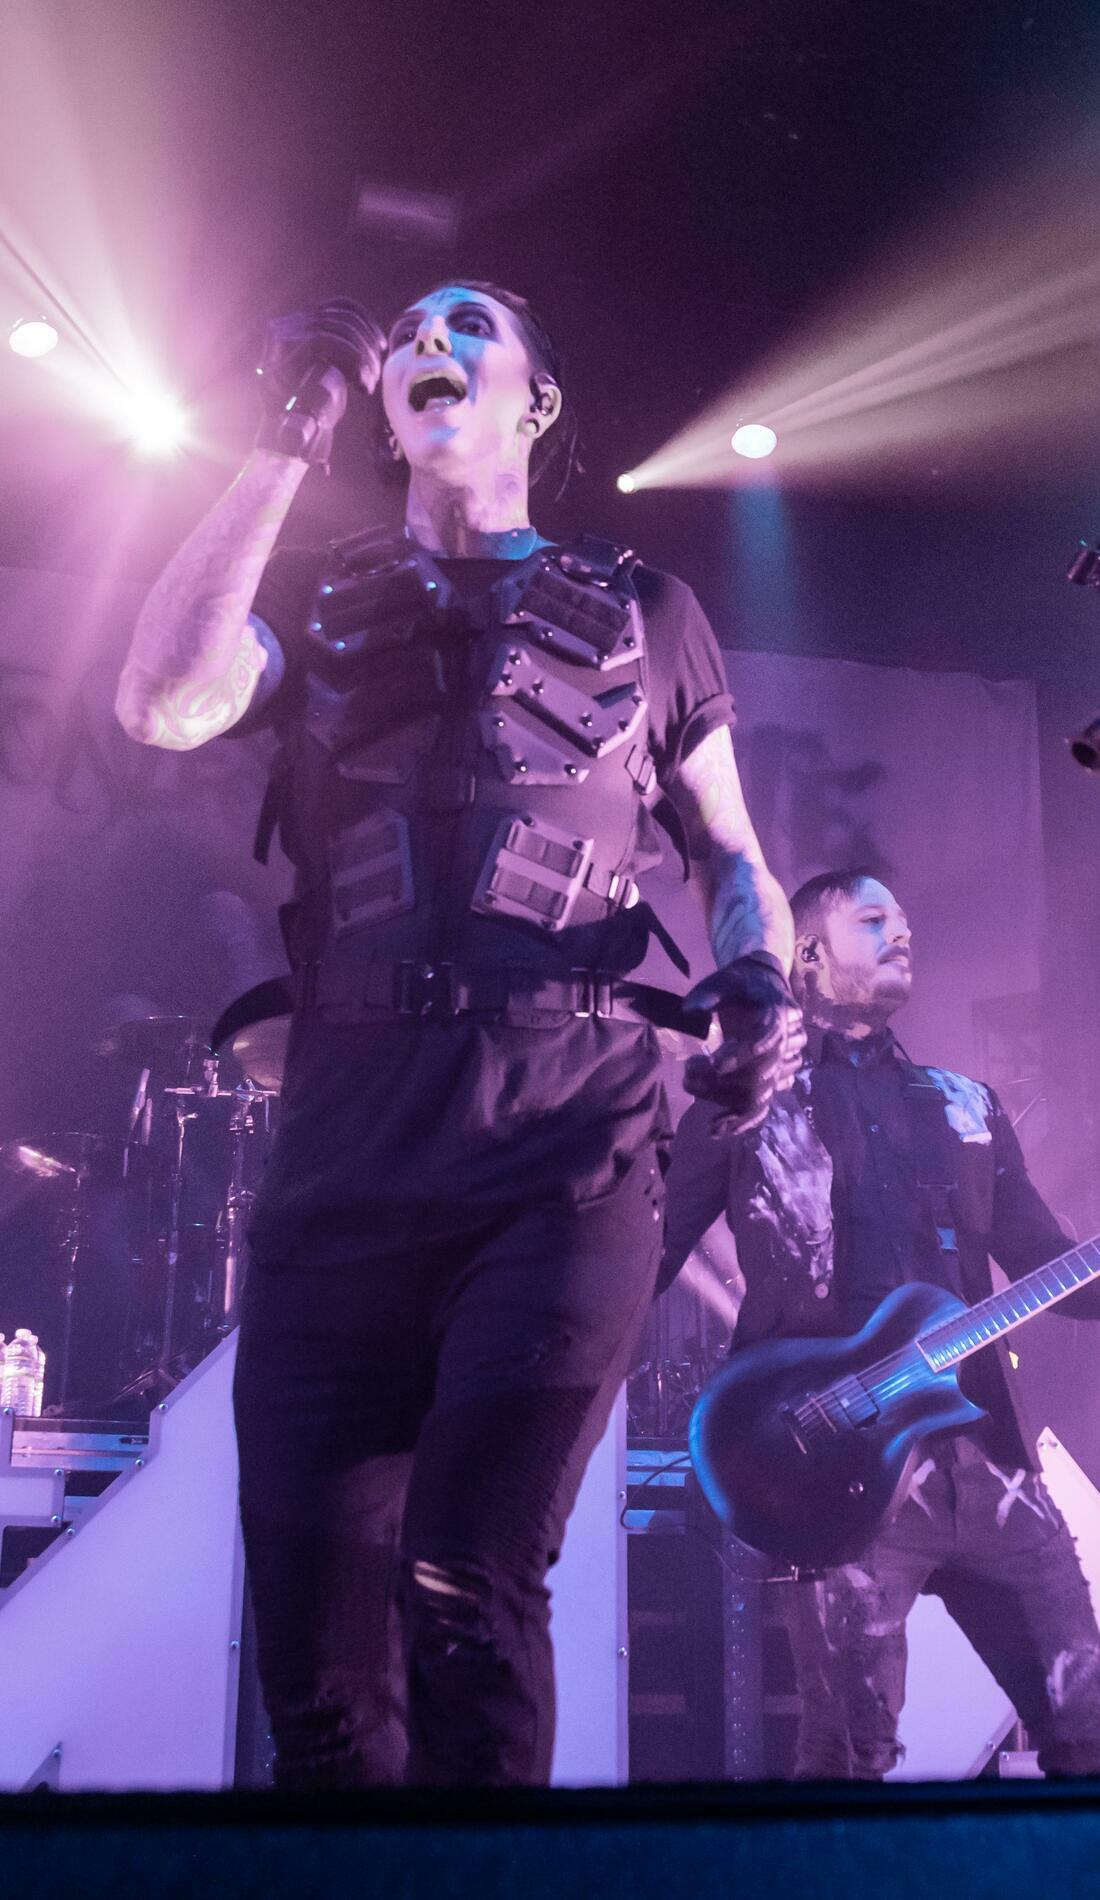 A Motionless in White live event